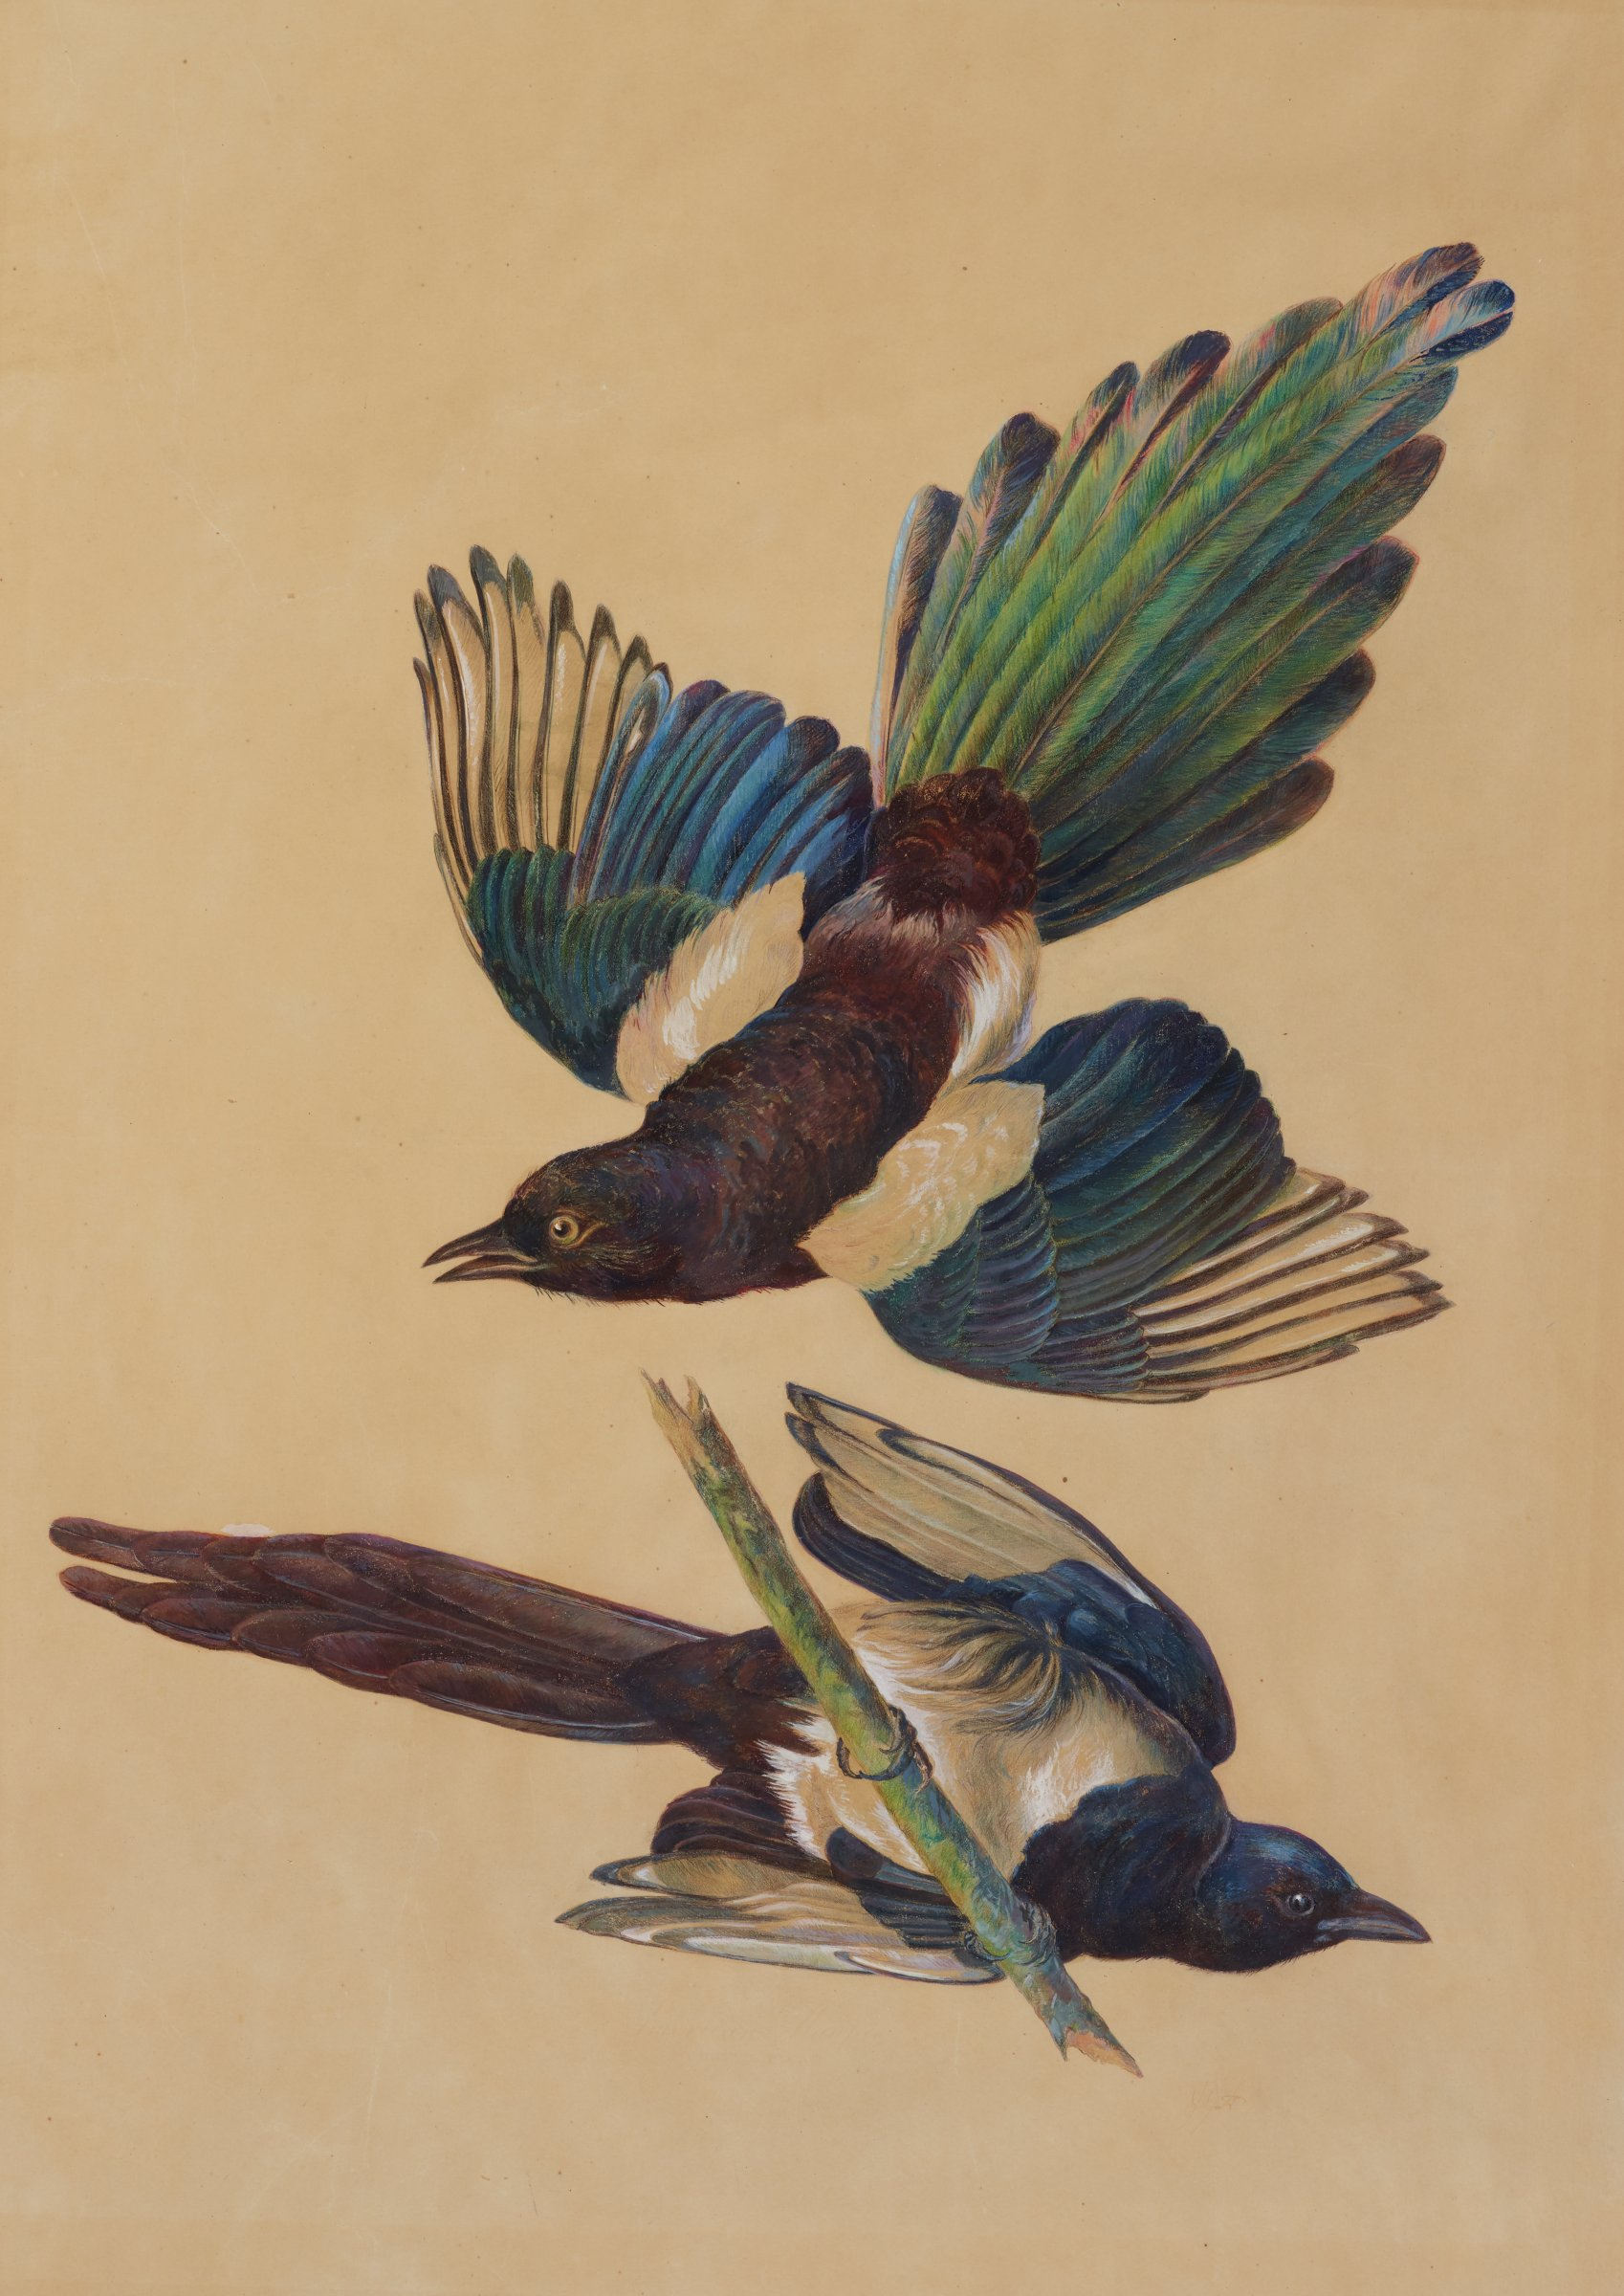 Two black-billed magpies are shown, one with wings fully expanded, and another sitting on a tree branch with its stomach to the viewer. The bodies are primarily covered with black and white feathers. The tails and wings contain green, purple, and green feathers with an iridescent-like sheen.